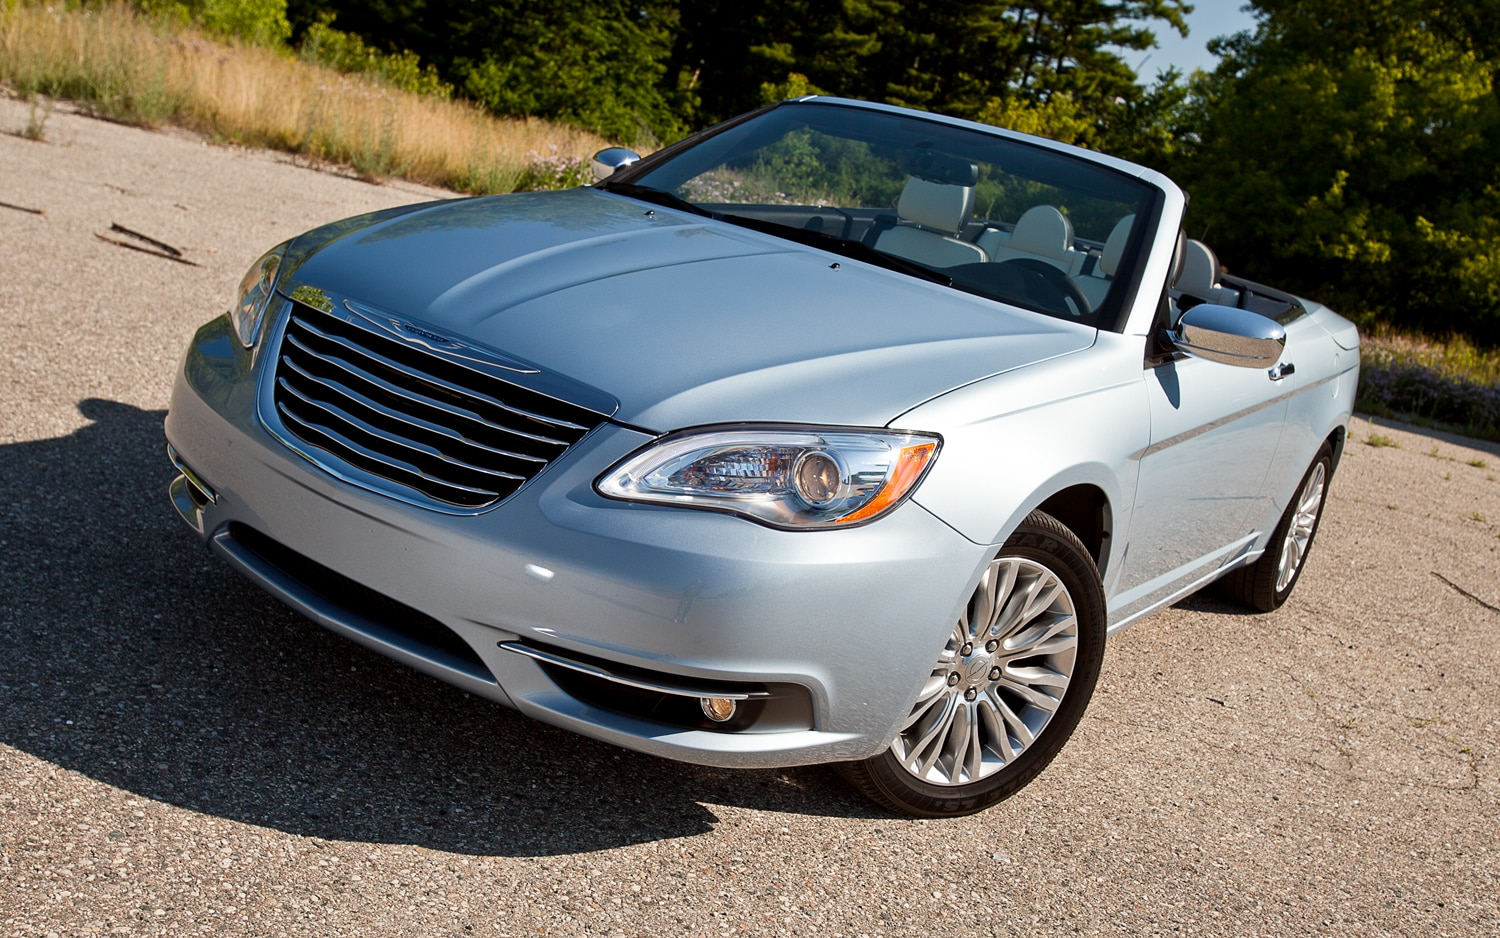 2012 Chrysler 200 Limited Owner Manual